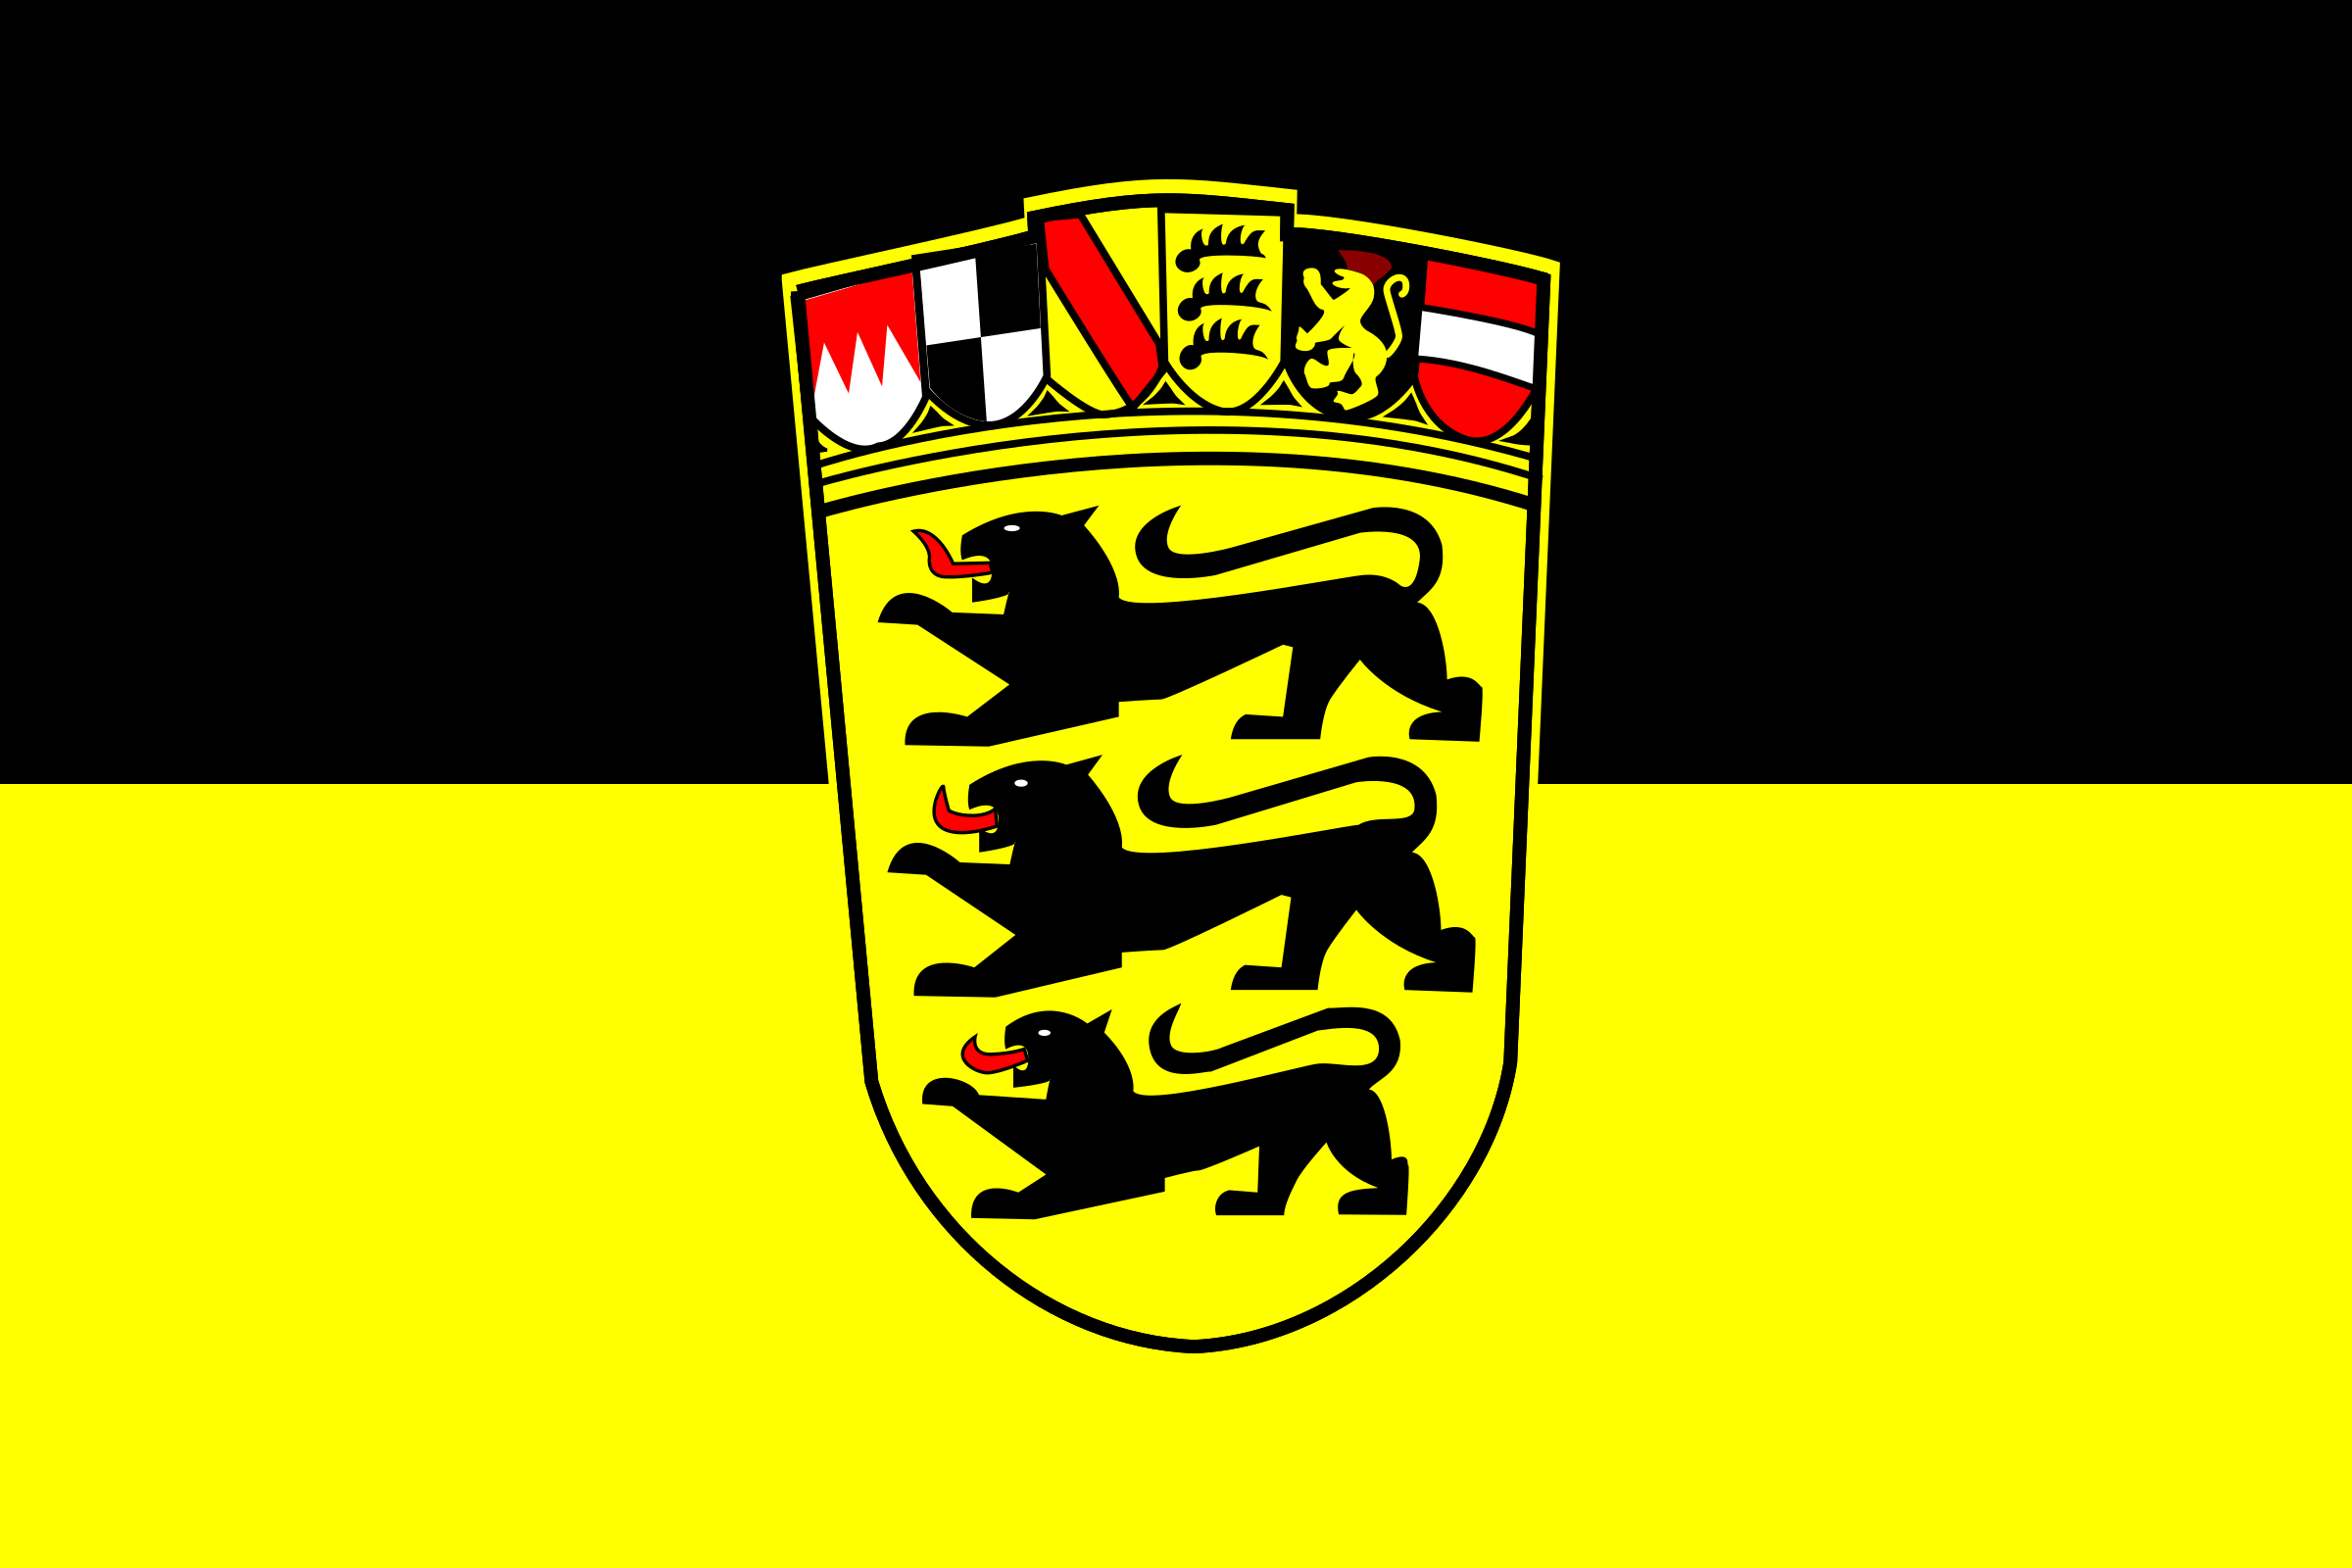 Flag of Baden-Württemberg by tobias